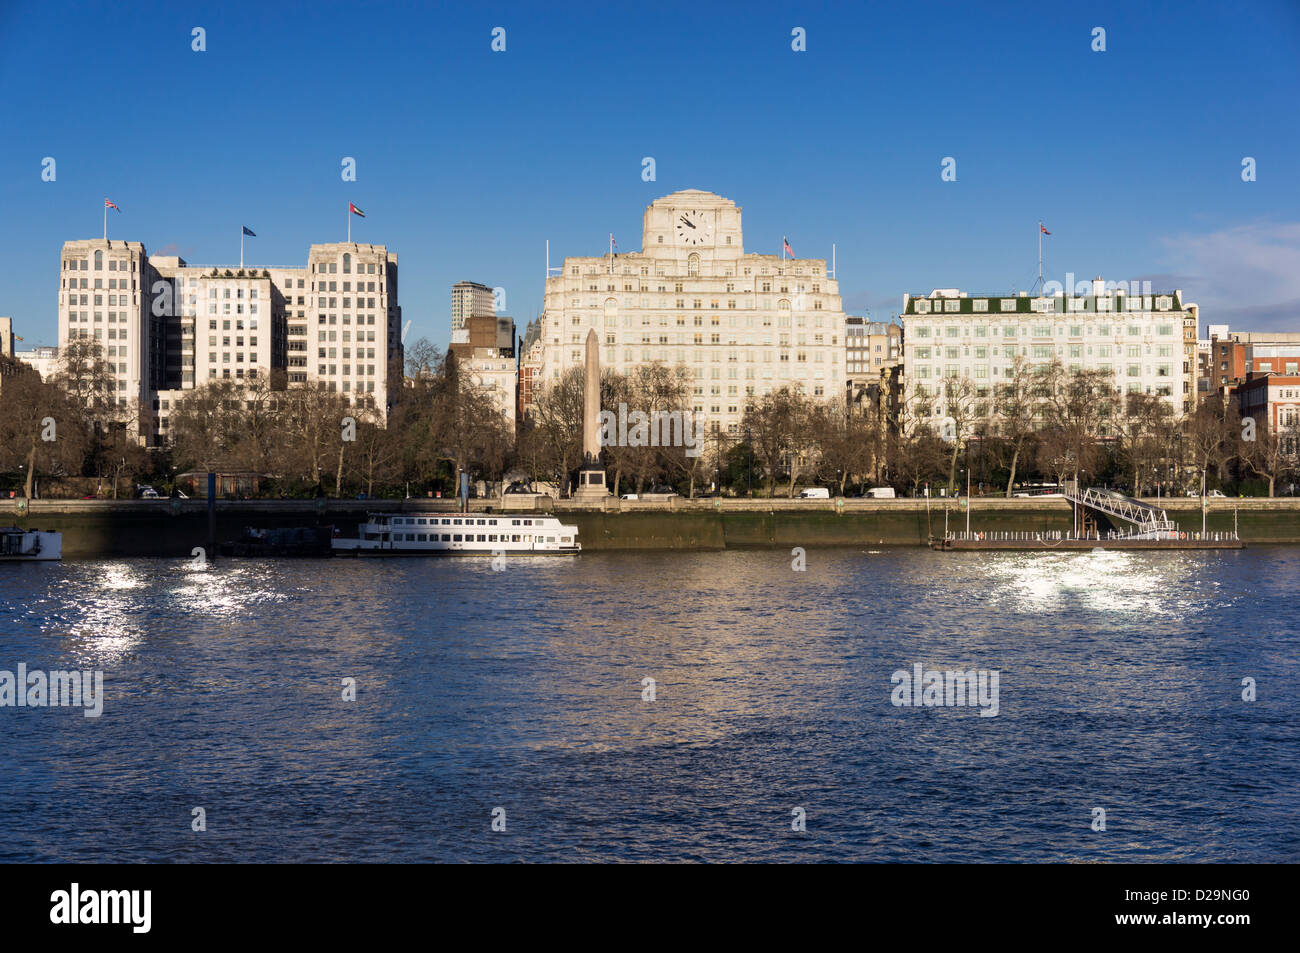 Embankment, London, UK - buildings L to R: The Adelphi, Shell Mex House and Savoy Hotel - Stock Image